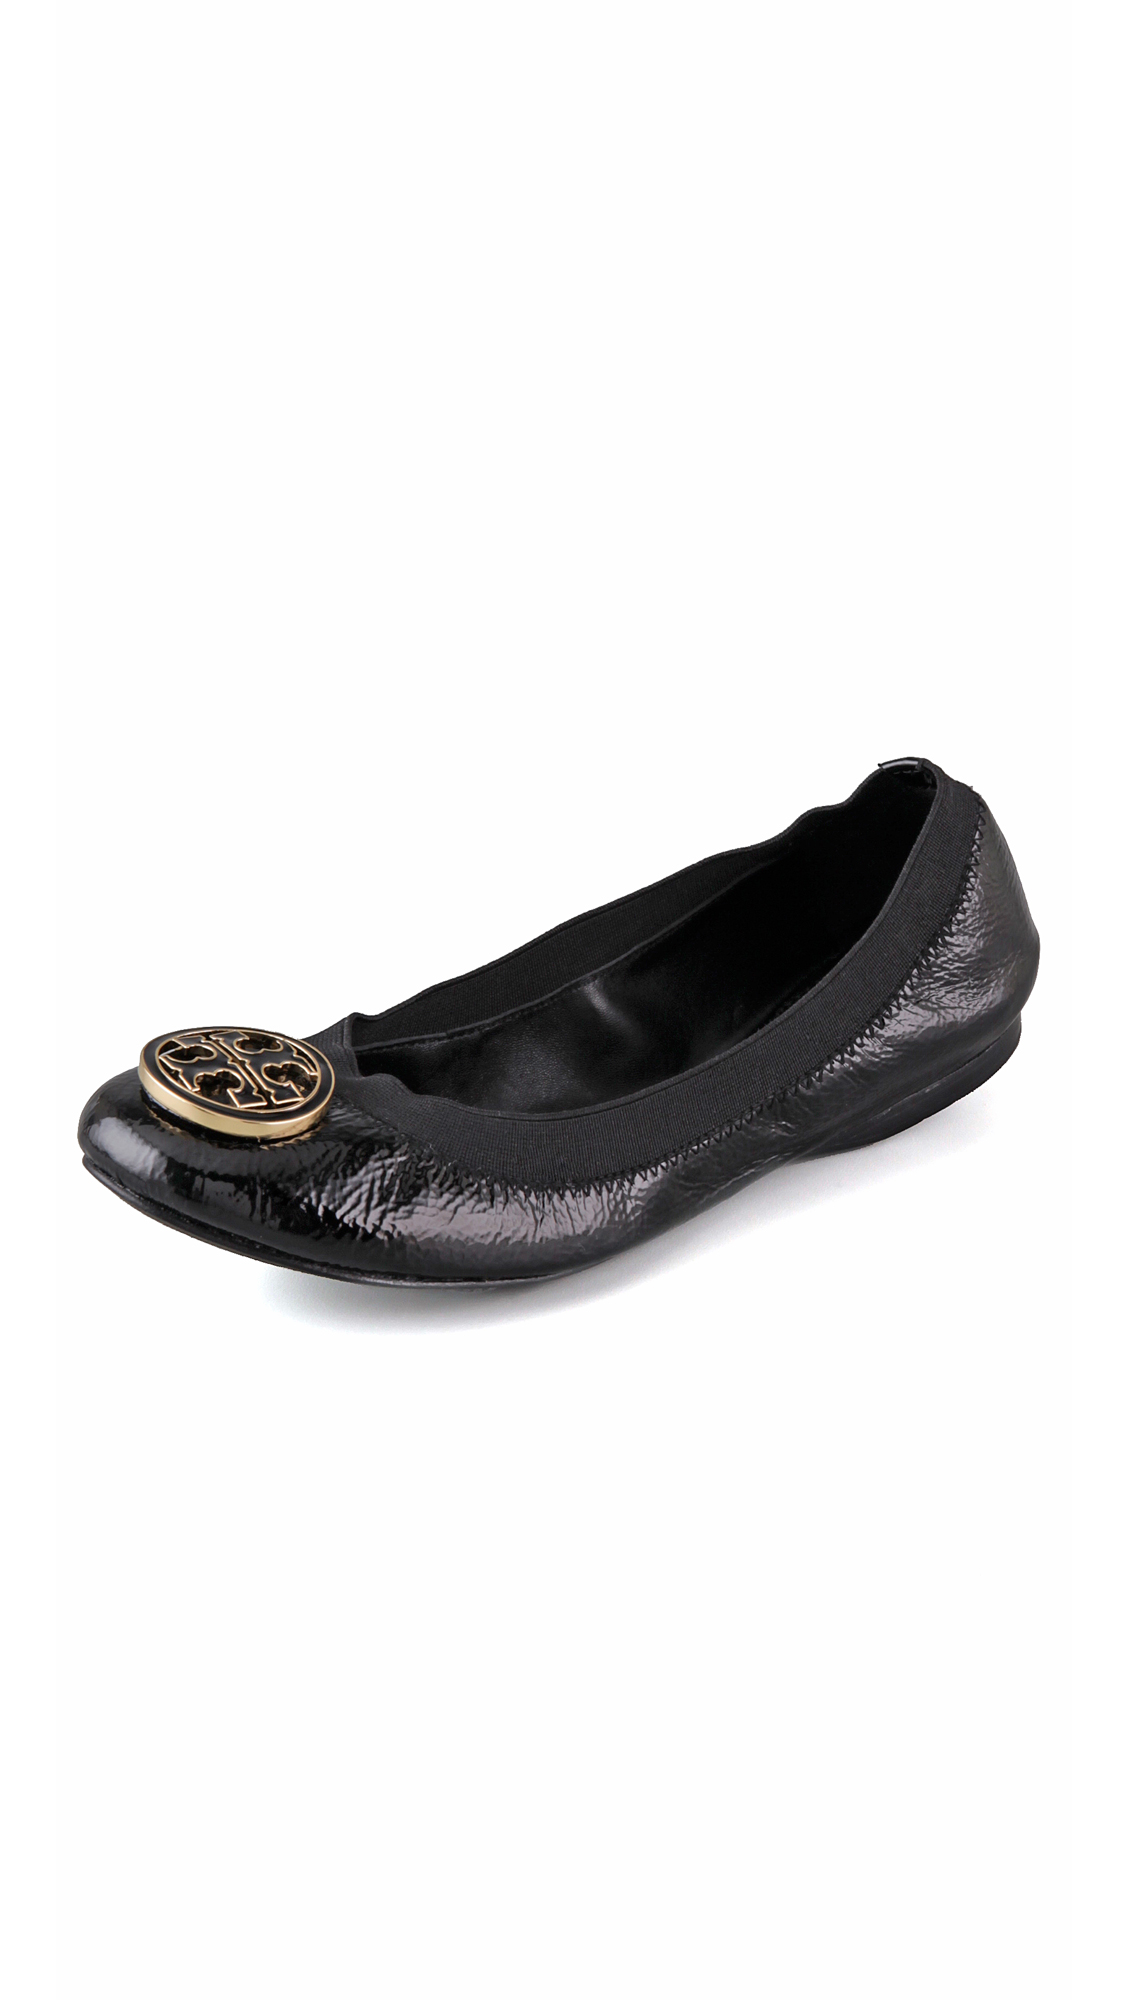 Product - Tory Burch Laura Flip Flop Flats Thong Tumbled Leather TB Logo (8, Spark Gold) Product Image. Price $ Product Title. Tory Burch Laura Flip Flop Flats Thong Tumbled Leather TB Logo (8, Spark Gold) Add To Cart. There is a problem adding to cart. Please try again.